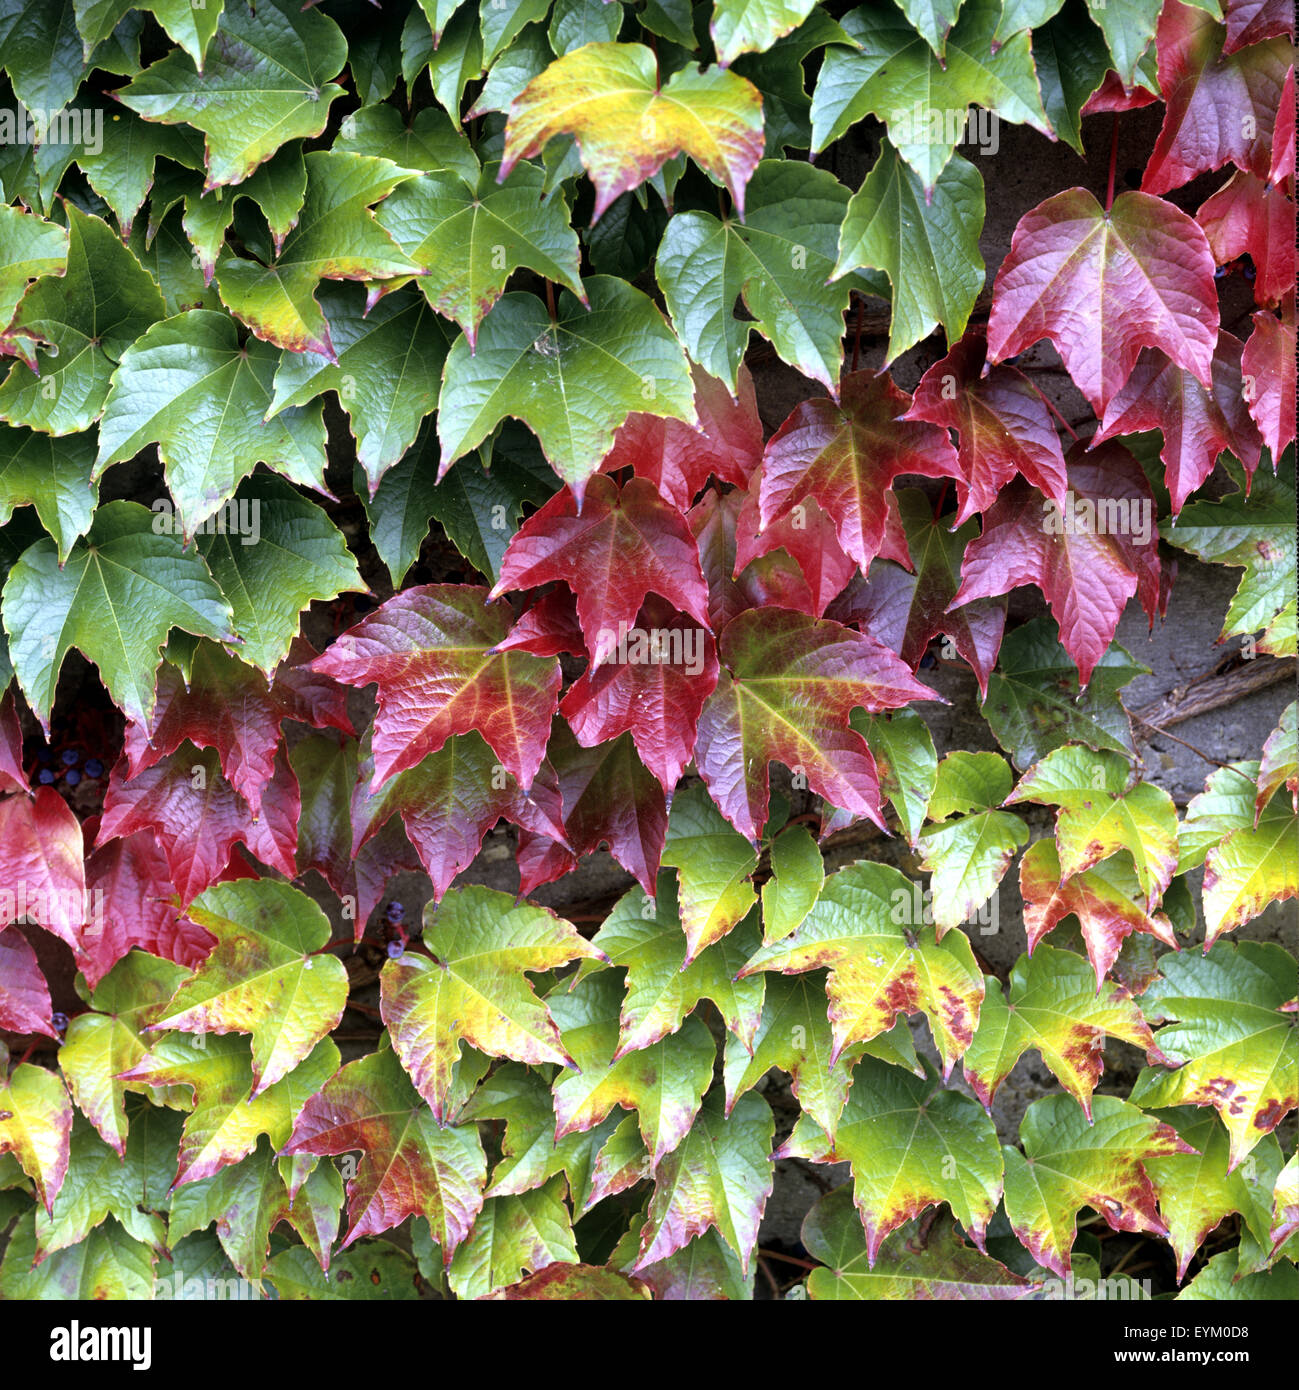 Wilder Wein Parthenocissus Quinquefolia Im Herbst Stock Photo